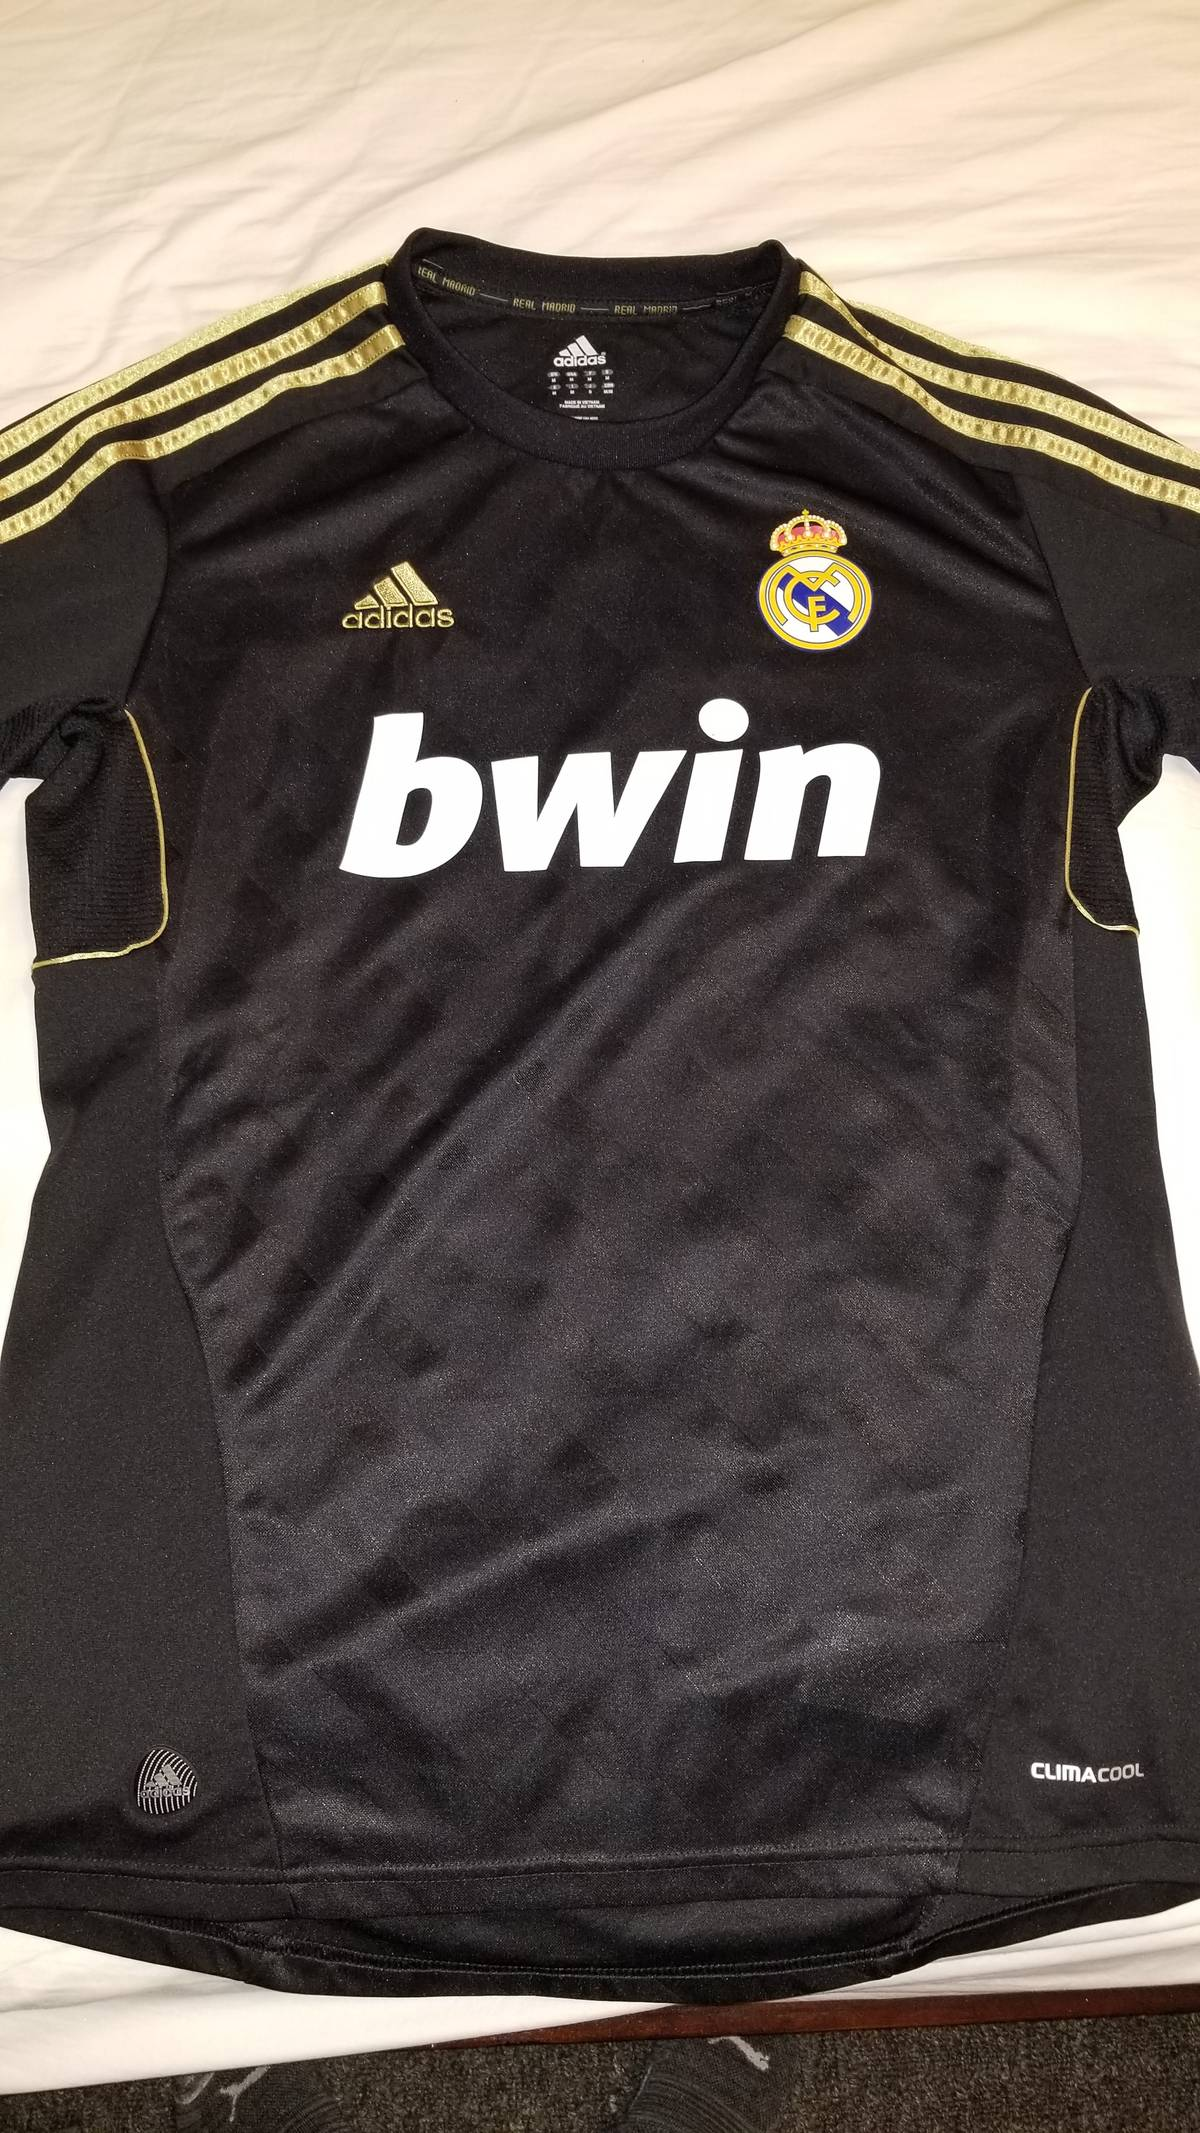 buy online cbcf4 bf976 Adidas × Real Madrid Real Madrid 2011 2012 Black/Gold Jersey Size M $38